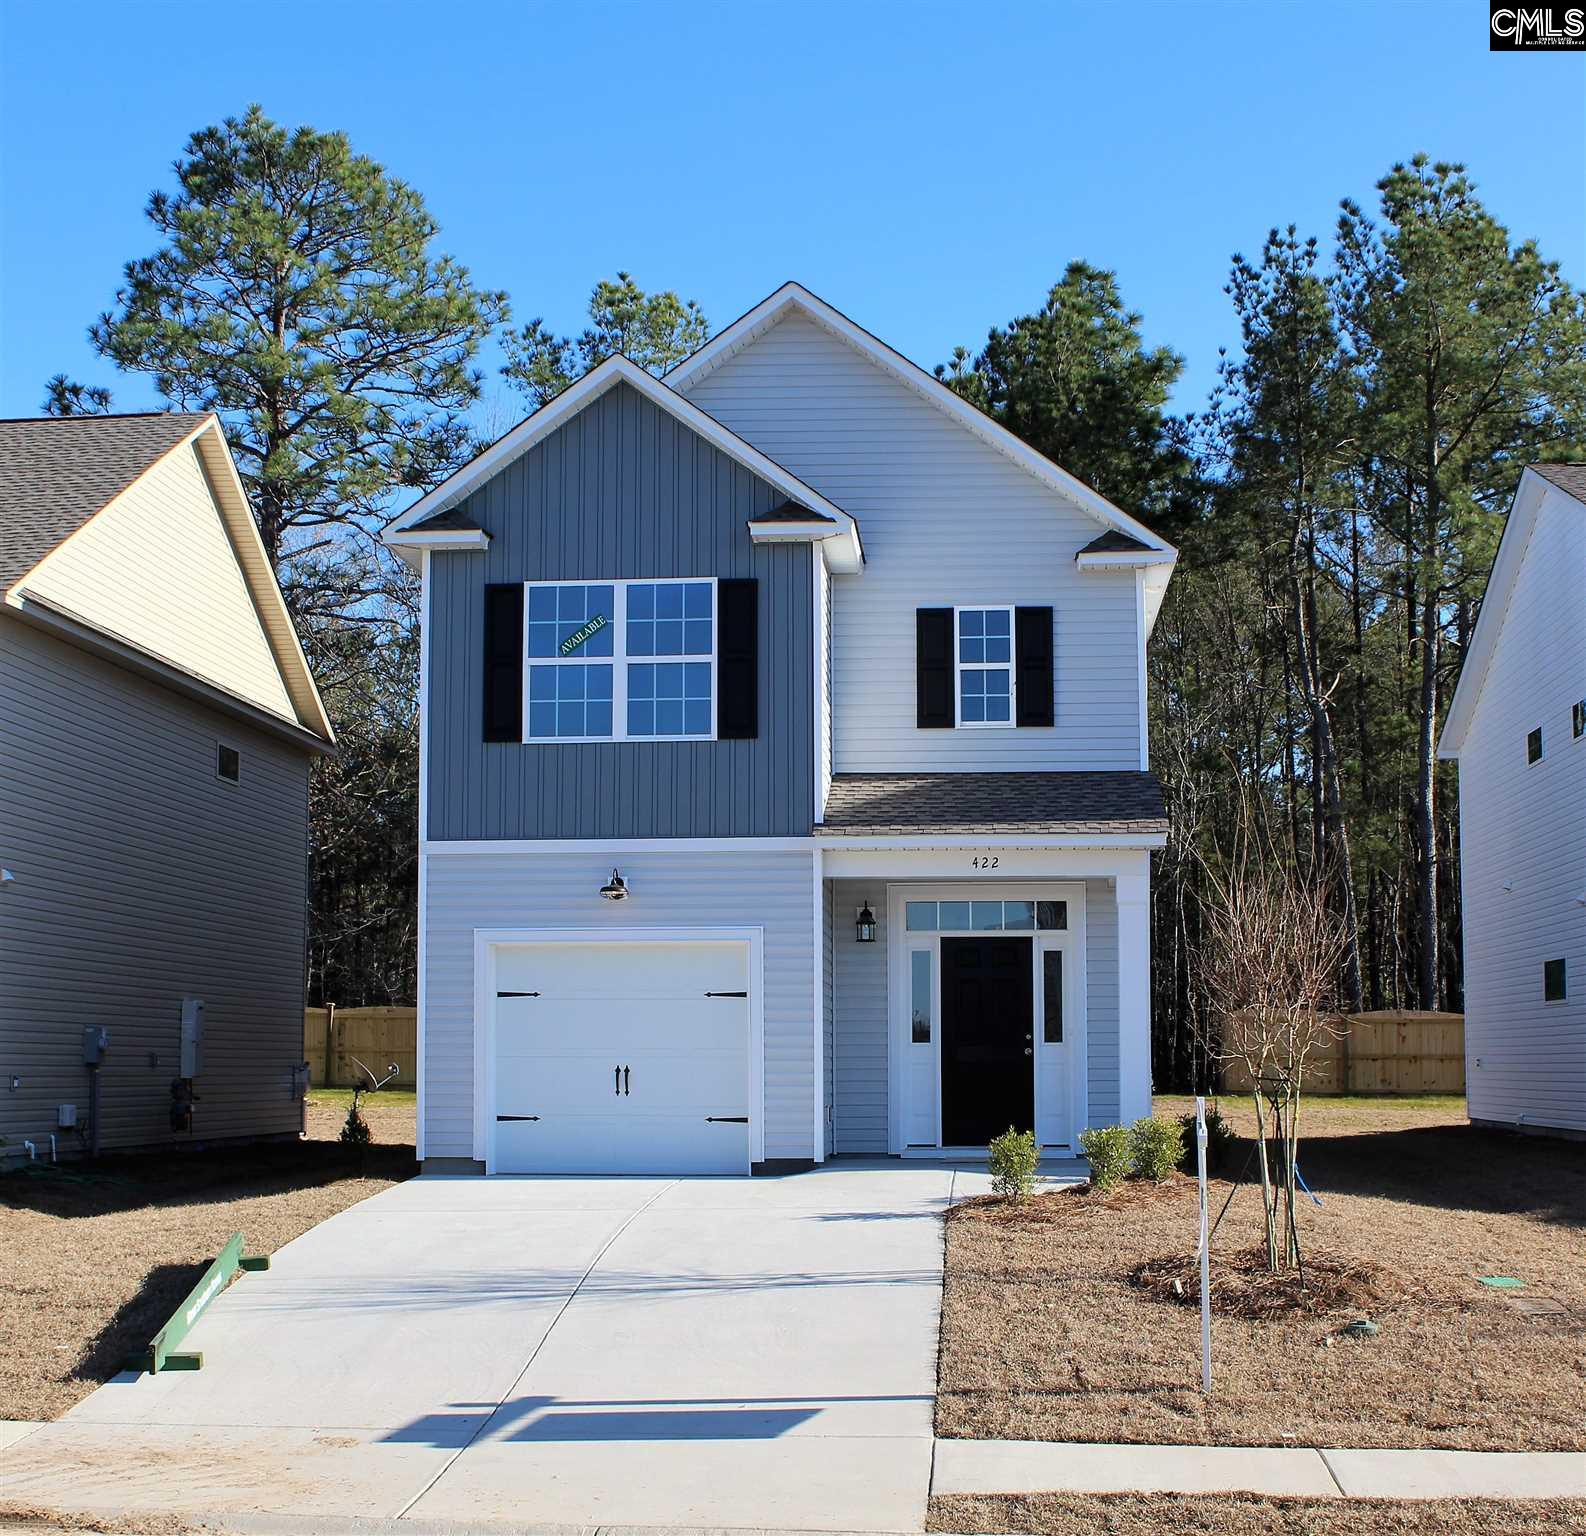 422 Fairford #75 Blythewood, SC 29016